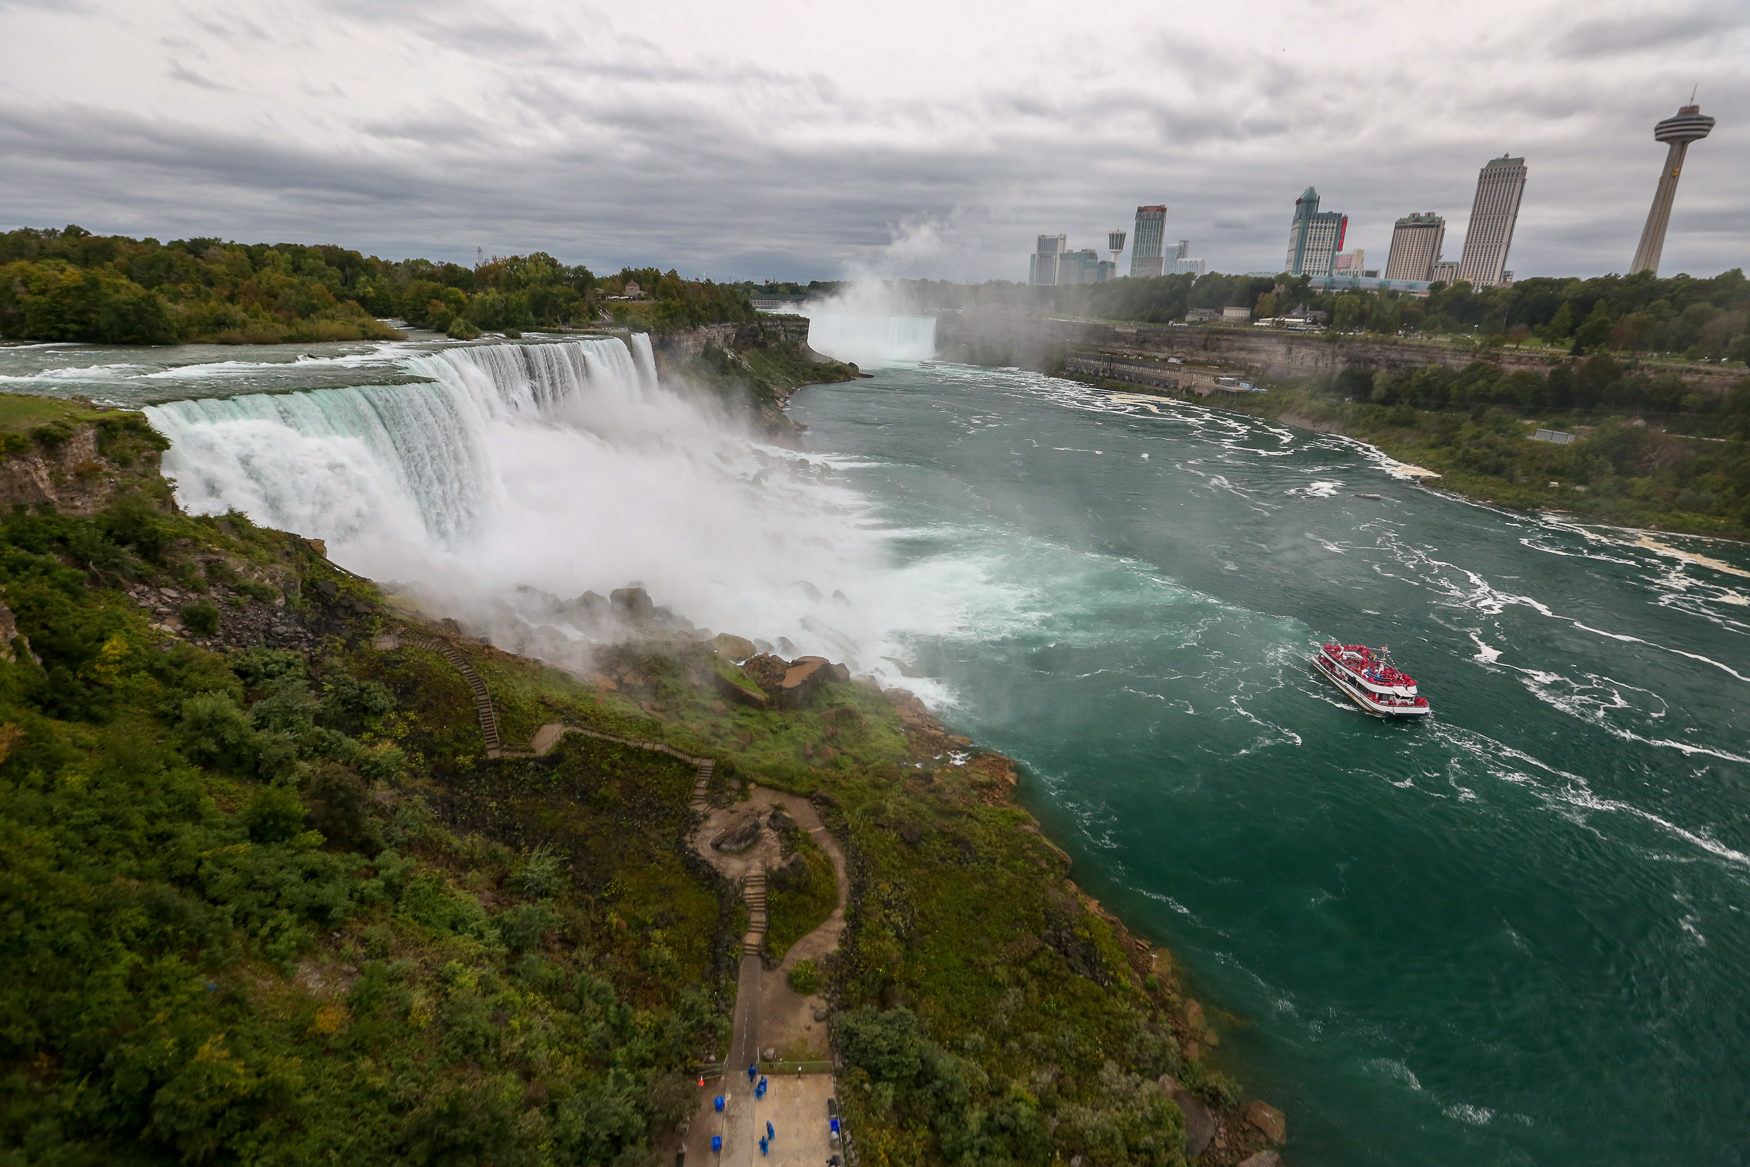 When you go to visit Niagara Falls, most people assume you need to dig out your passport to hop over to the Canadian side of the border. However, the American side of the falls has plenty to offer travelers, whether you want to hike a gorge, grab a stellar, locally sourced meal, traverse class five rapids or explore one of the charming towns around The Falls. (Amanda Andrade-Rhoades/DC Refined)